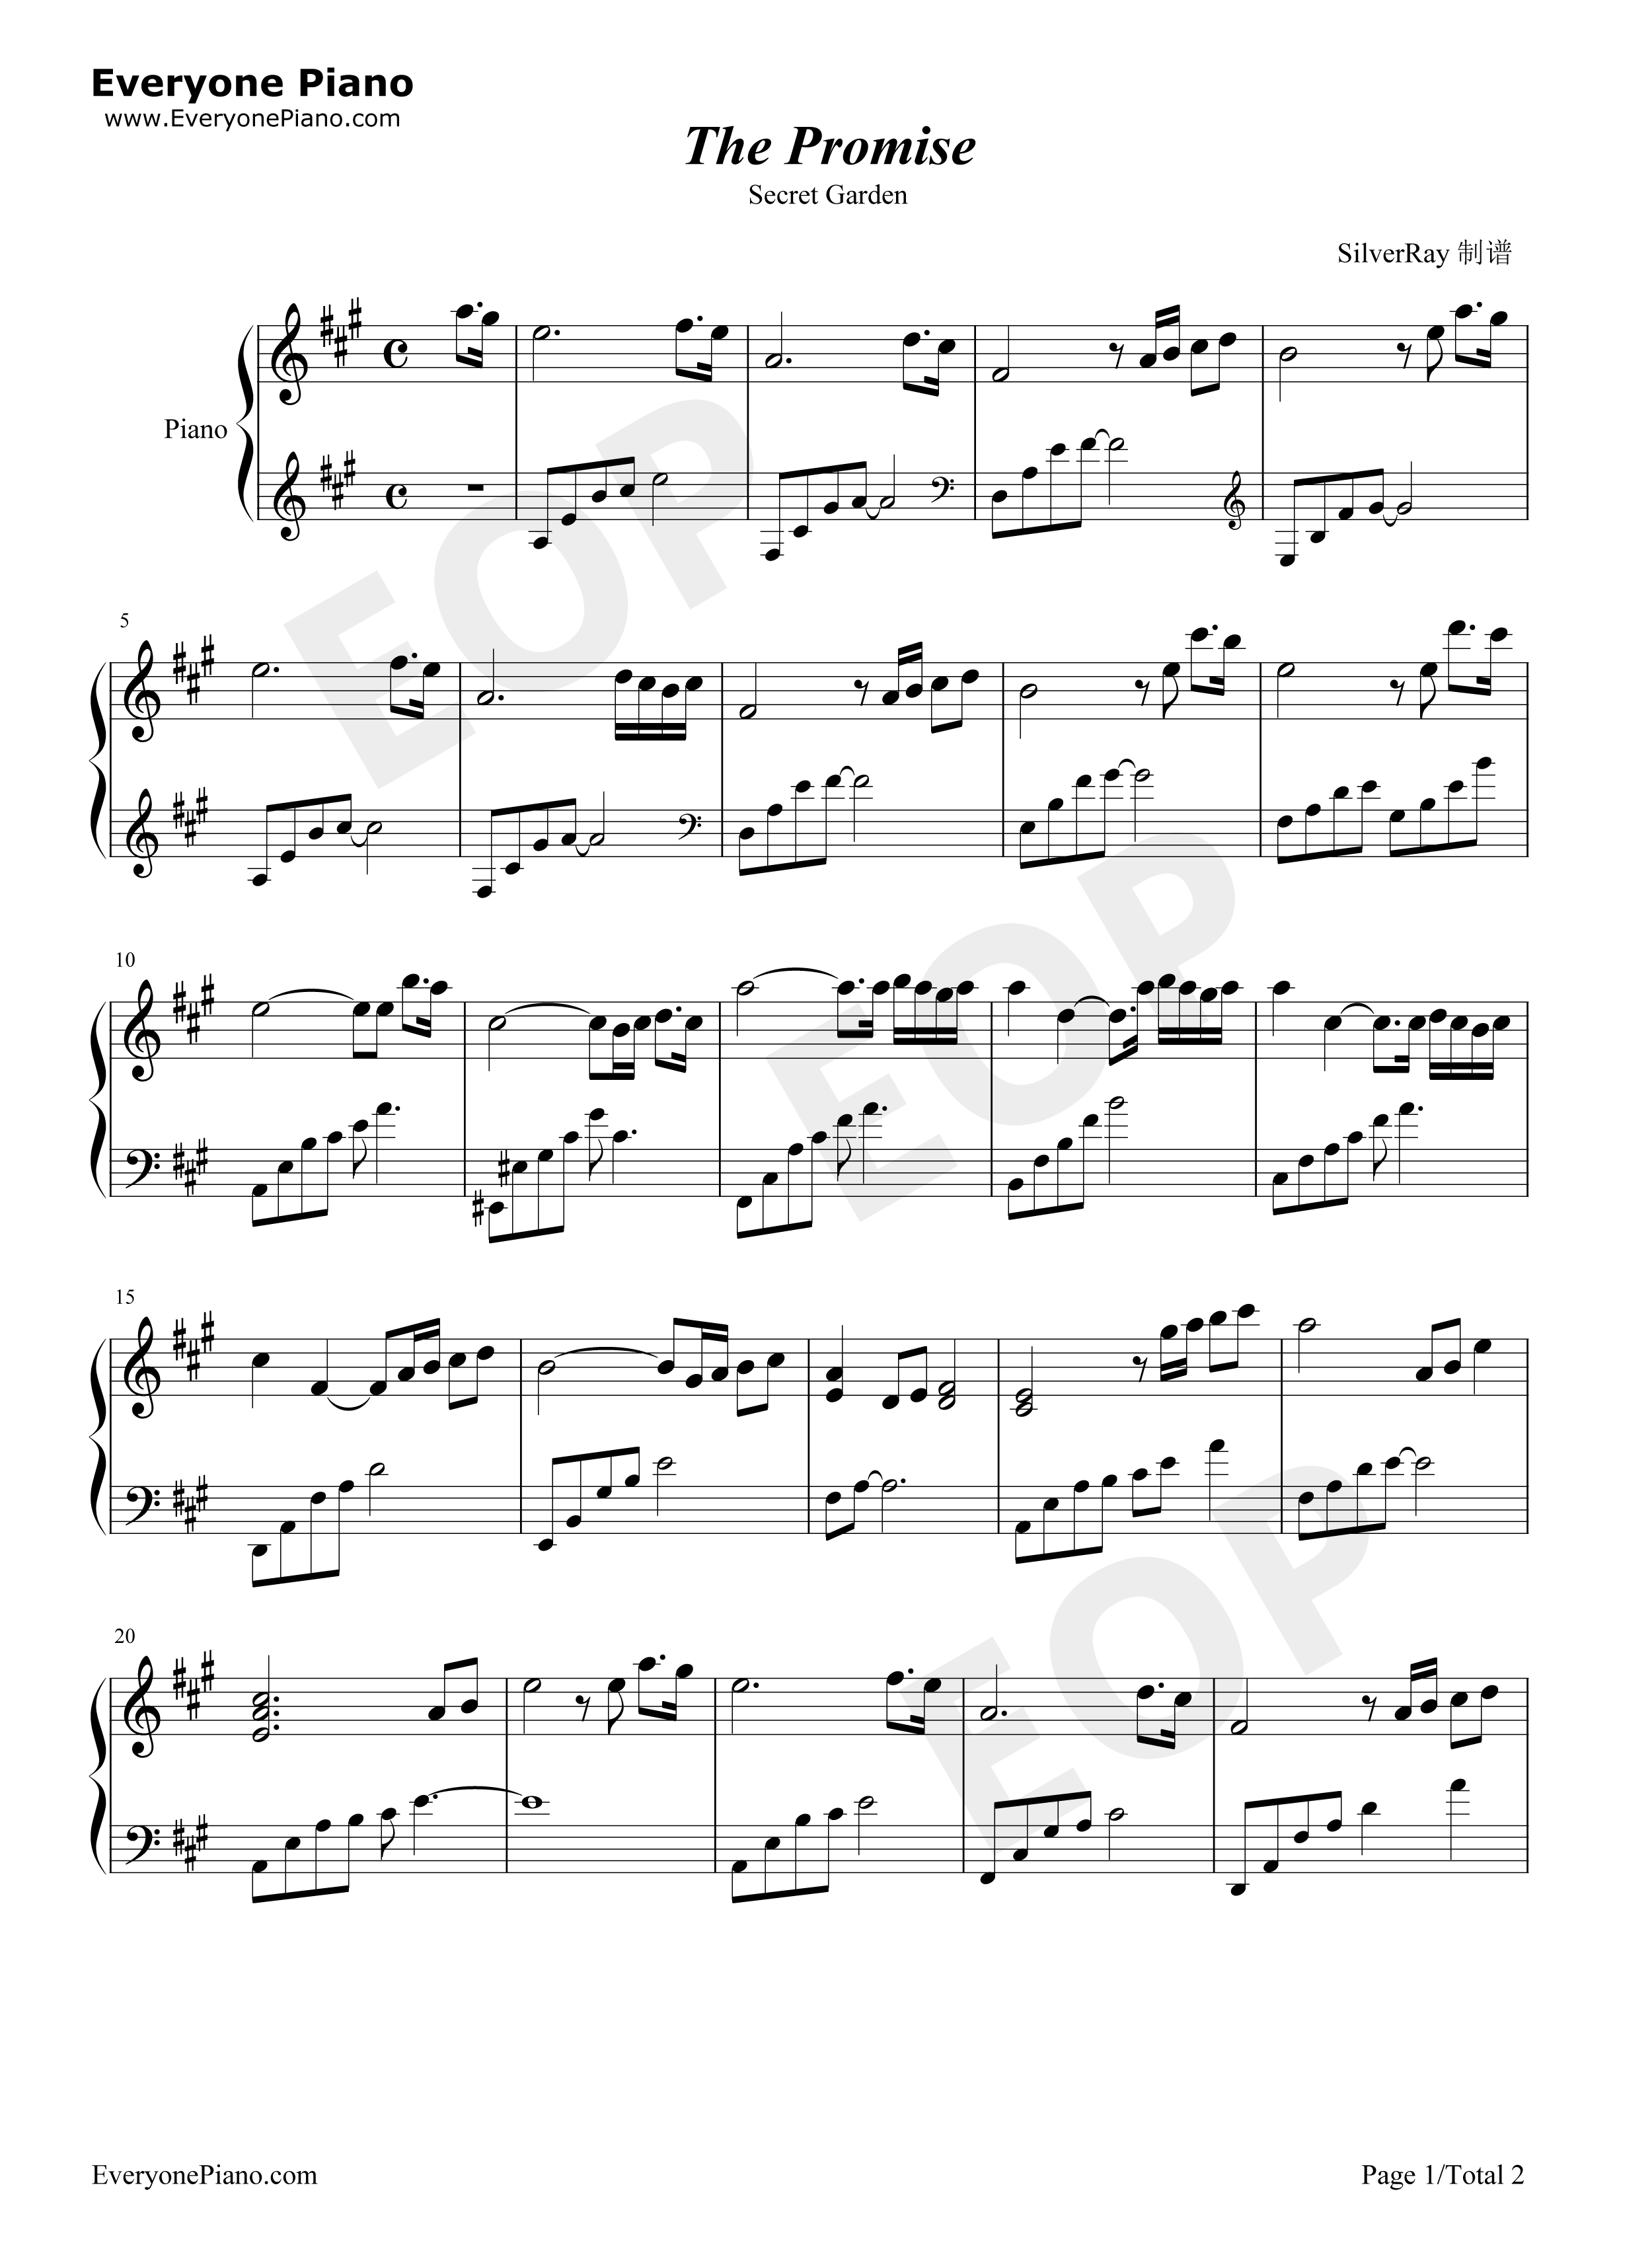 The Promise Secret Garden Stave Preview 1 Free Piano Sheet Music Piano Chords